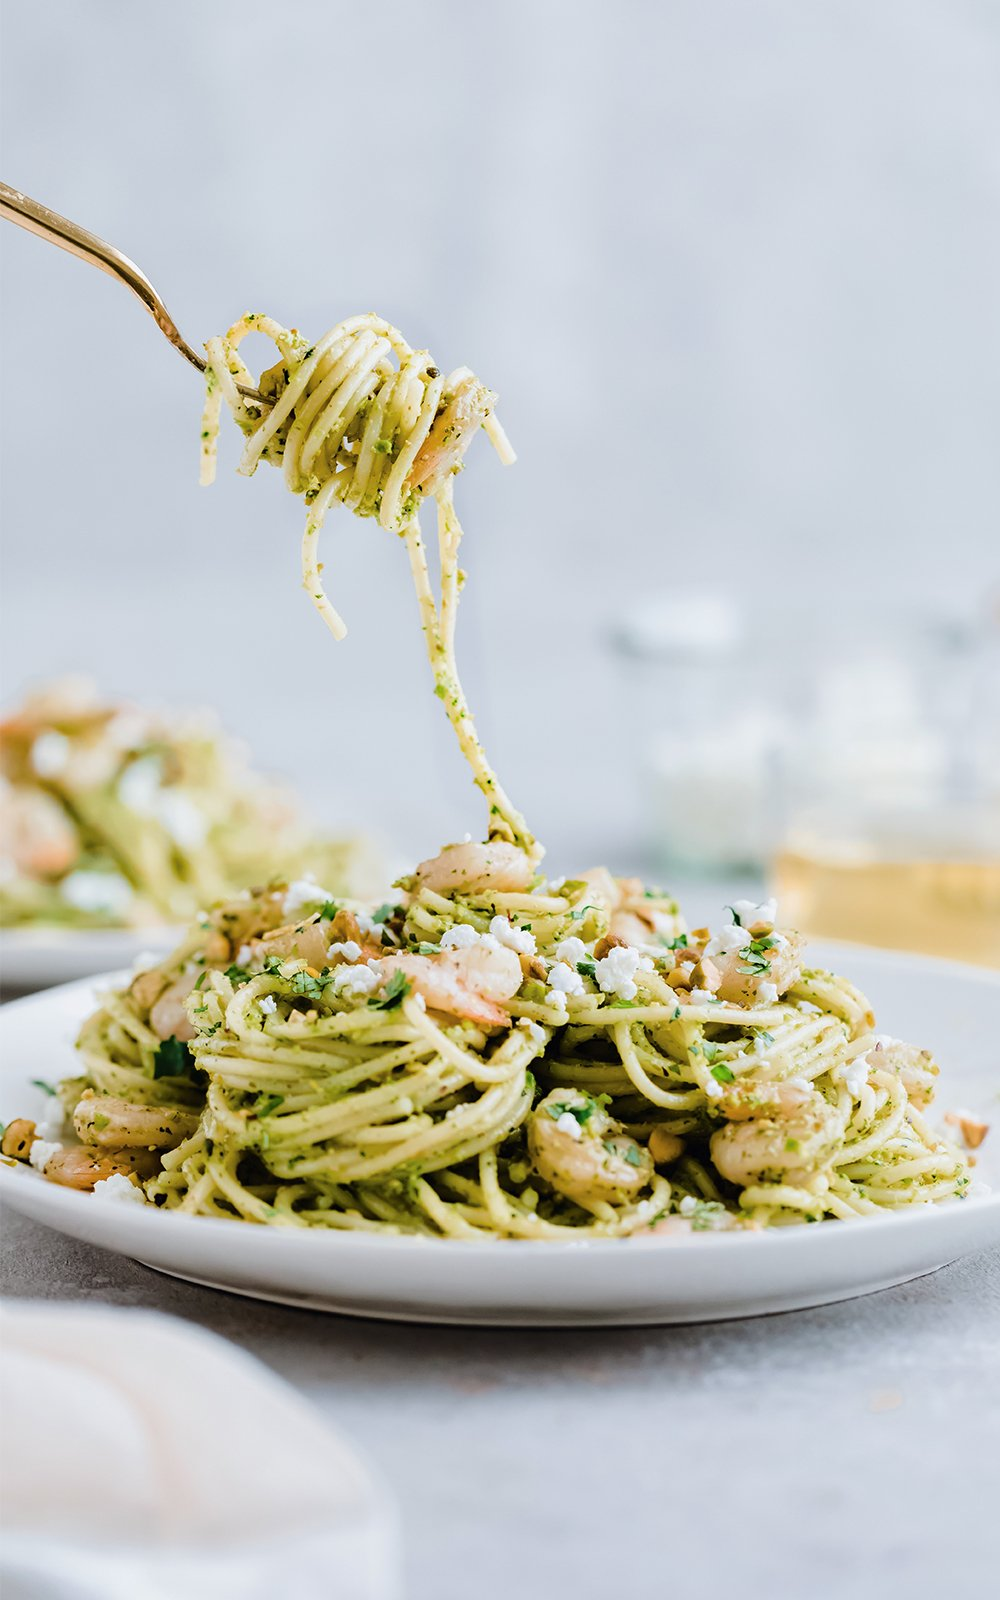 cilantro pistachio pesto shrimp pasta on a plate and twirled on a fork